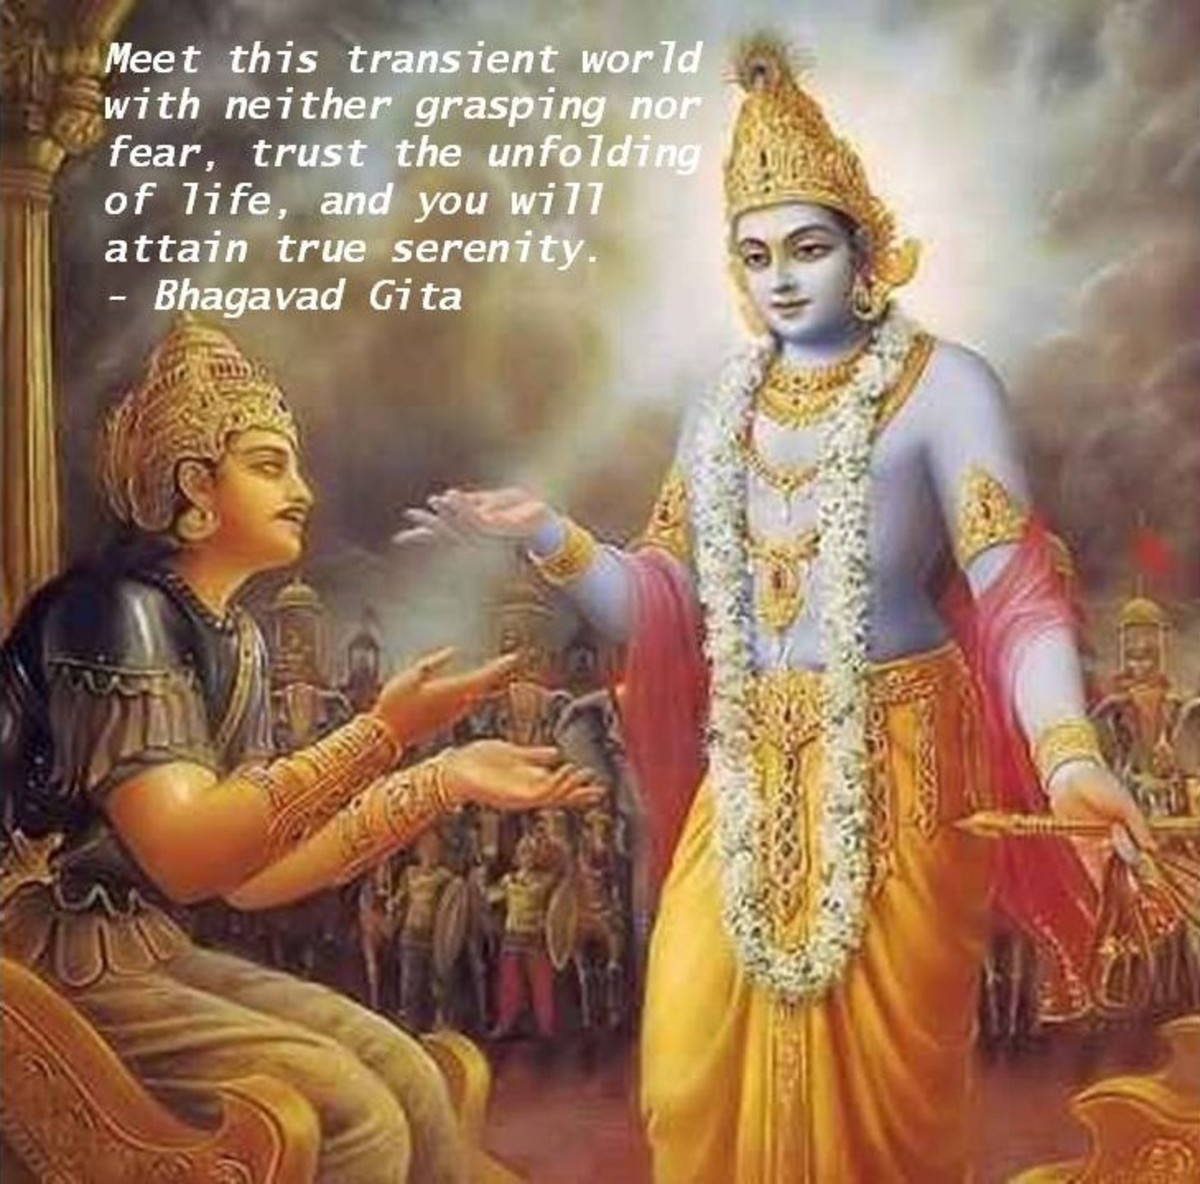 a-glimpse-into-the-bhagavad-gita-the-song-celestial-mondays-inspiration-59